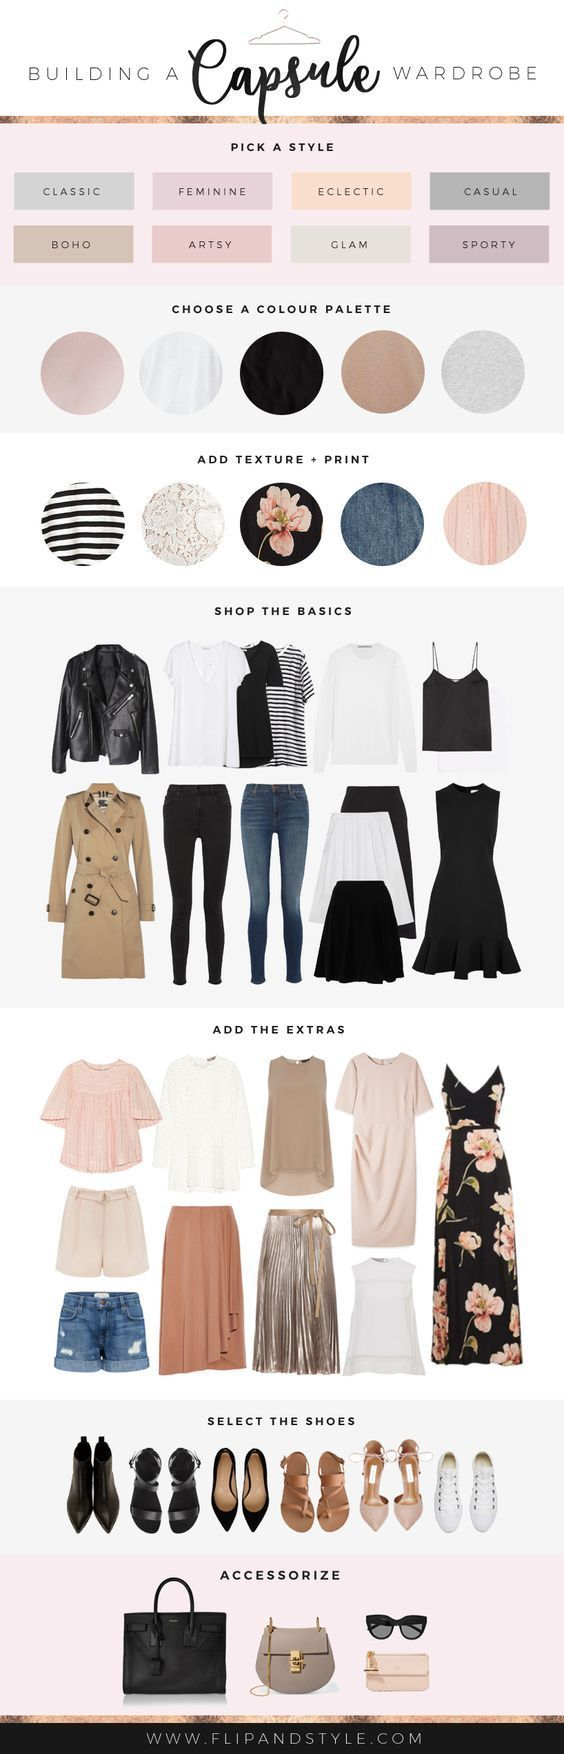 How To Build A Capsule Wardrobe - Flip And Style